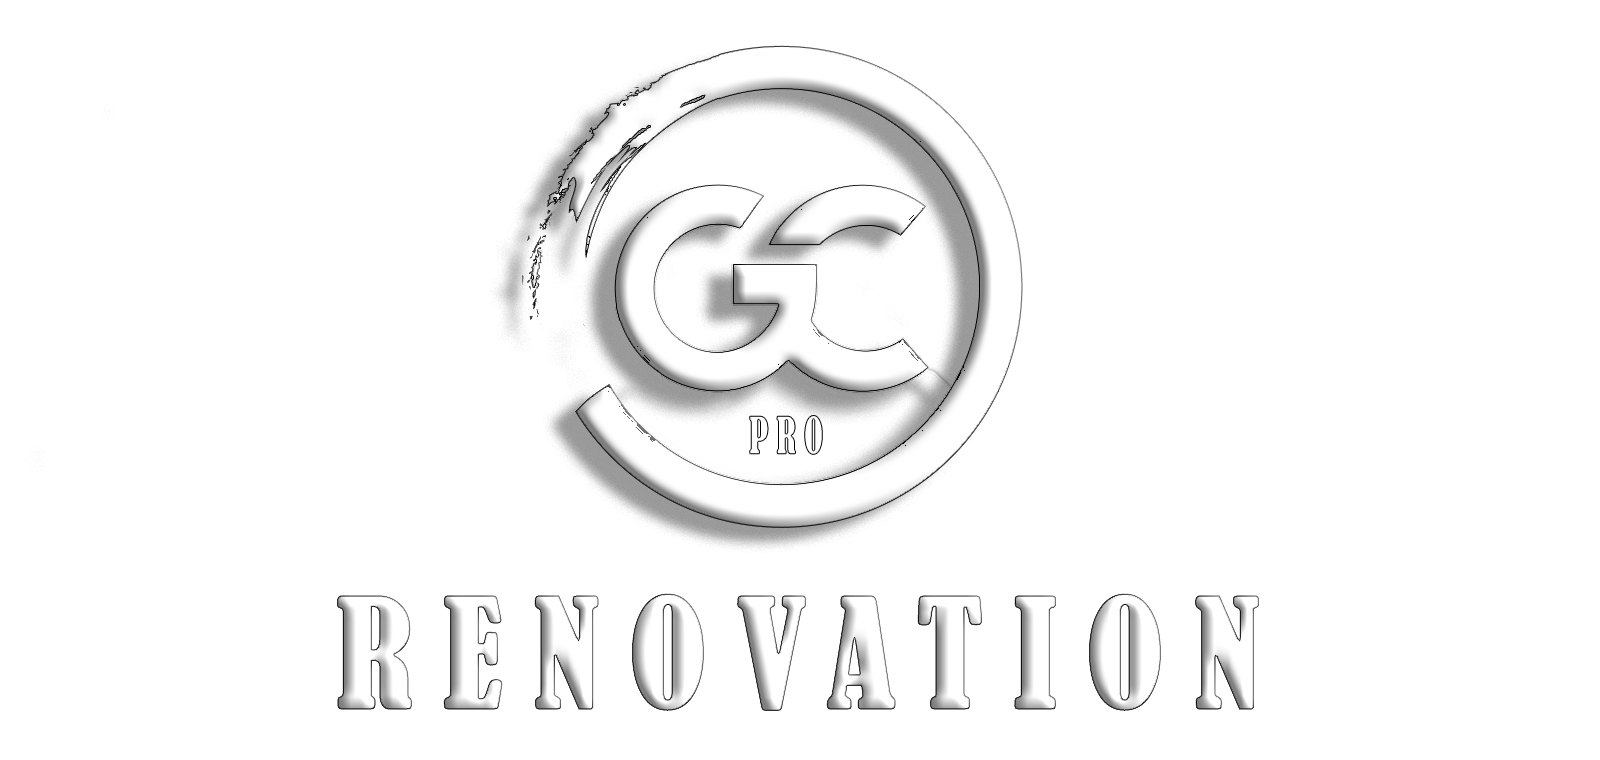 gc pro renovation